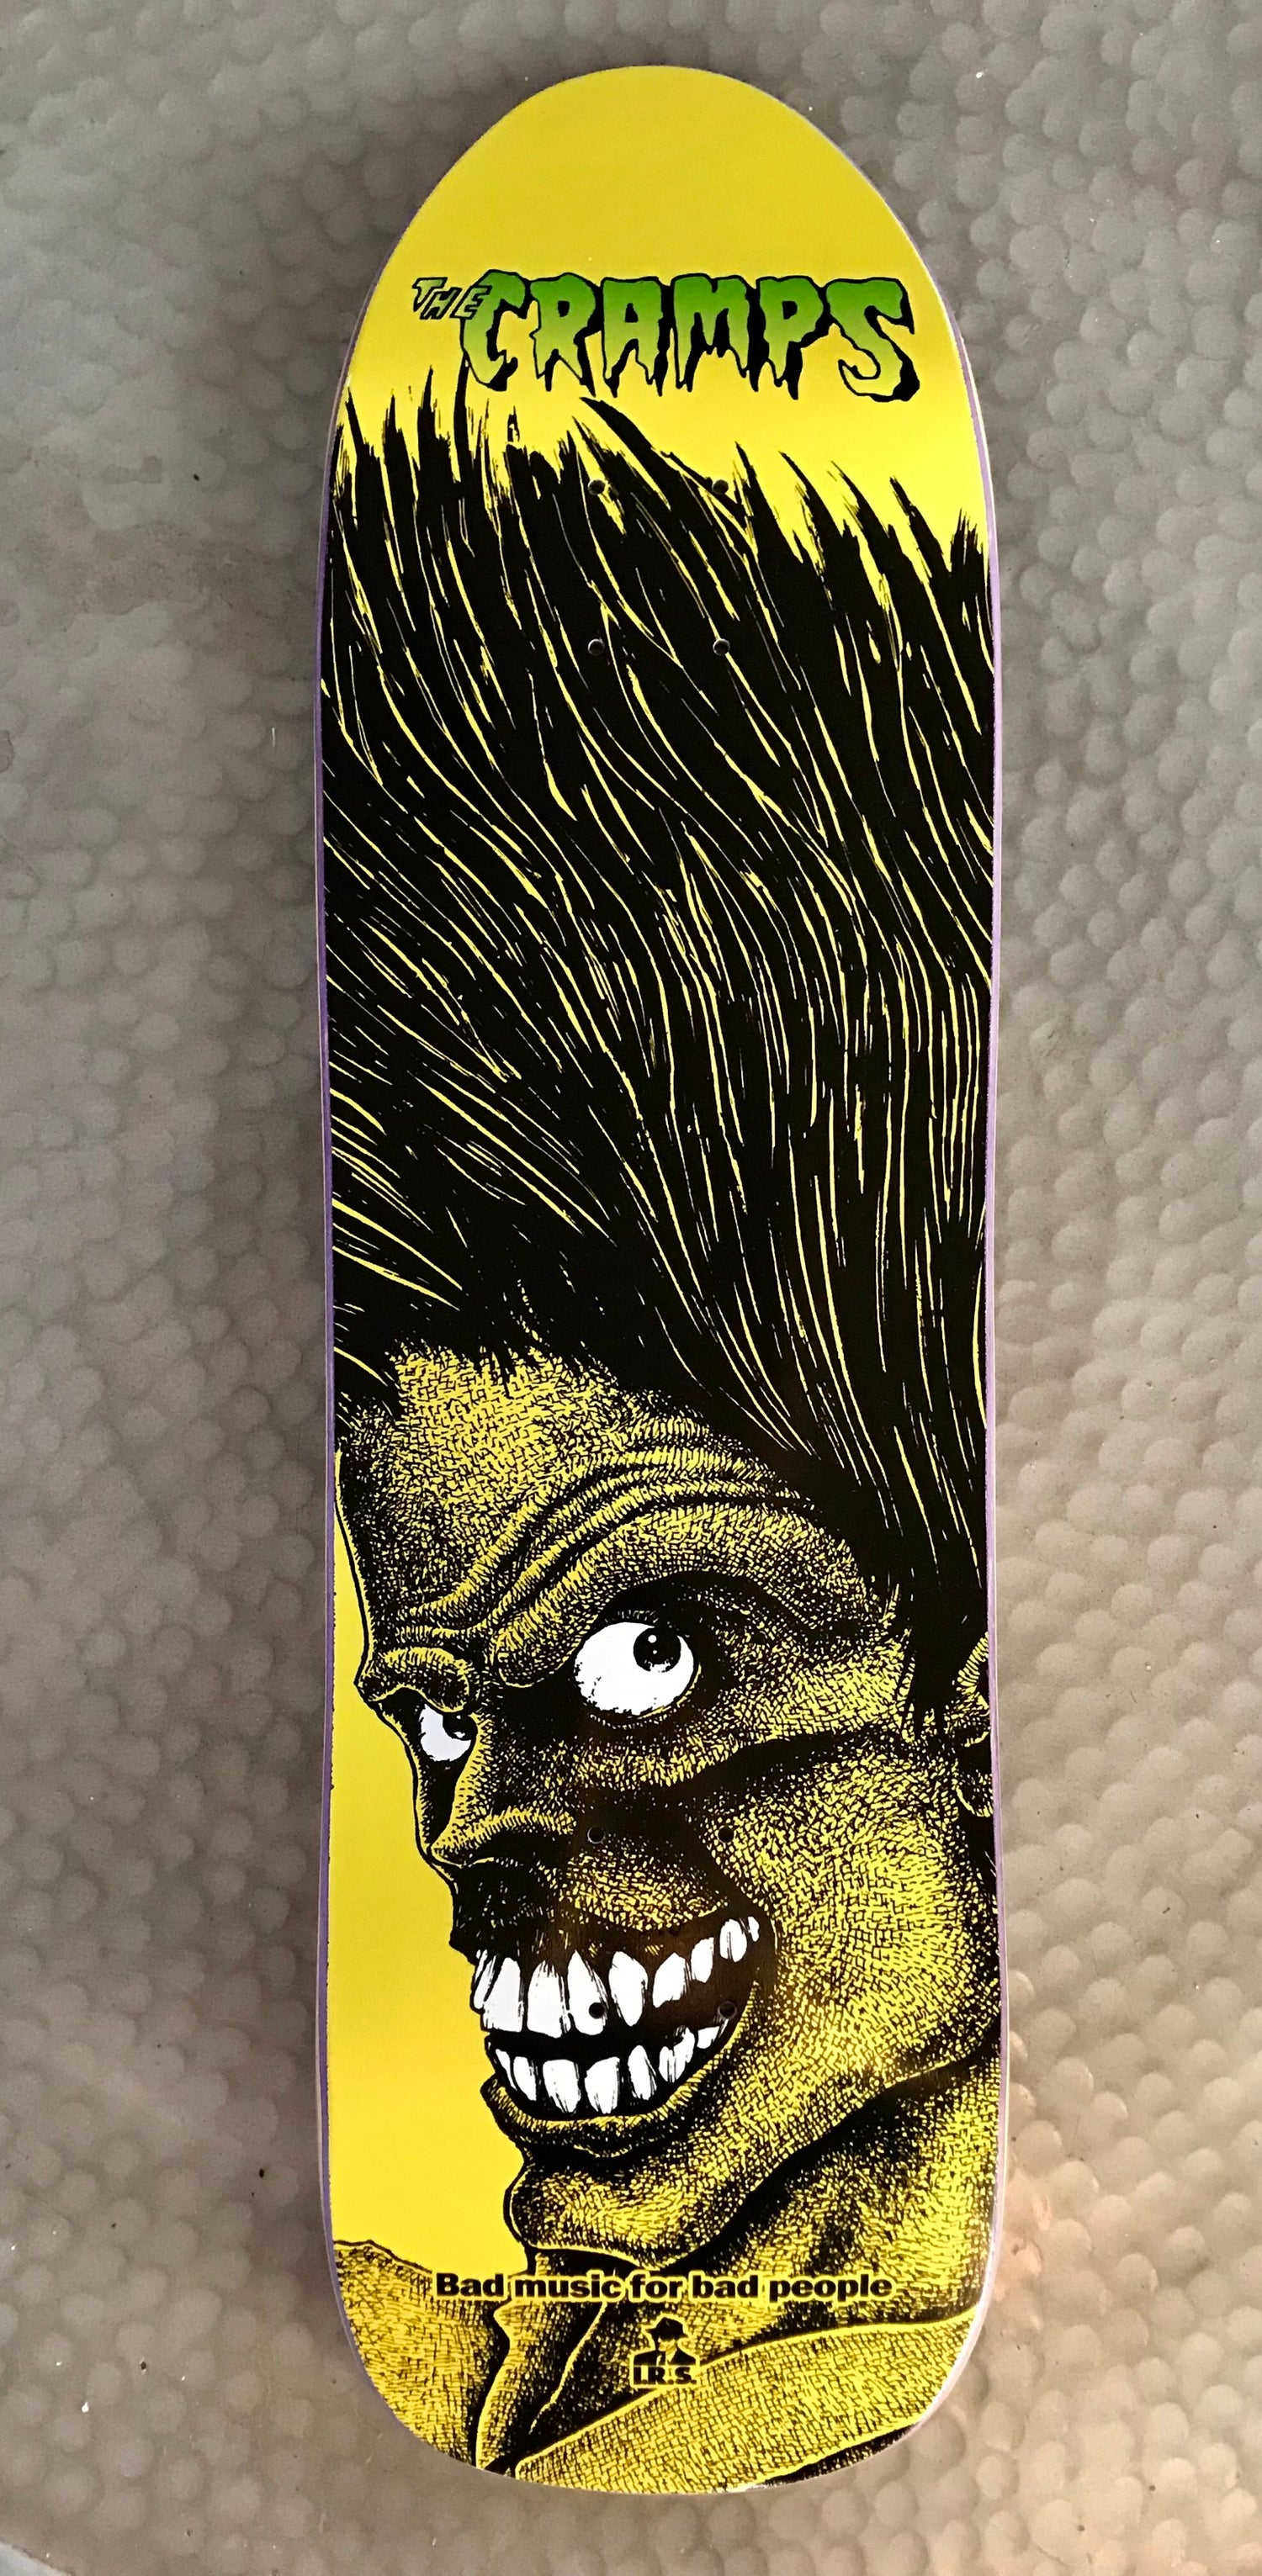 Image of The Cramps skateboard